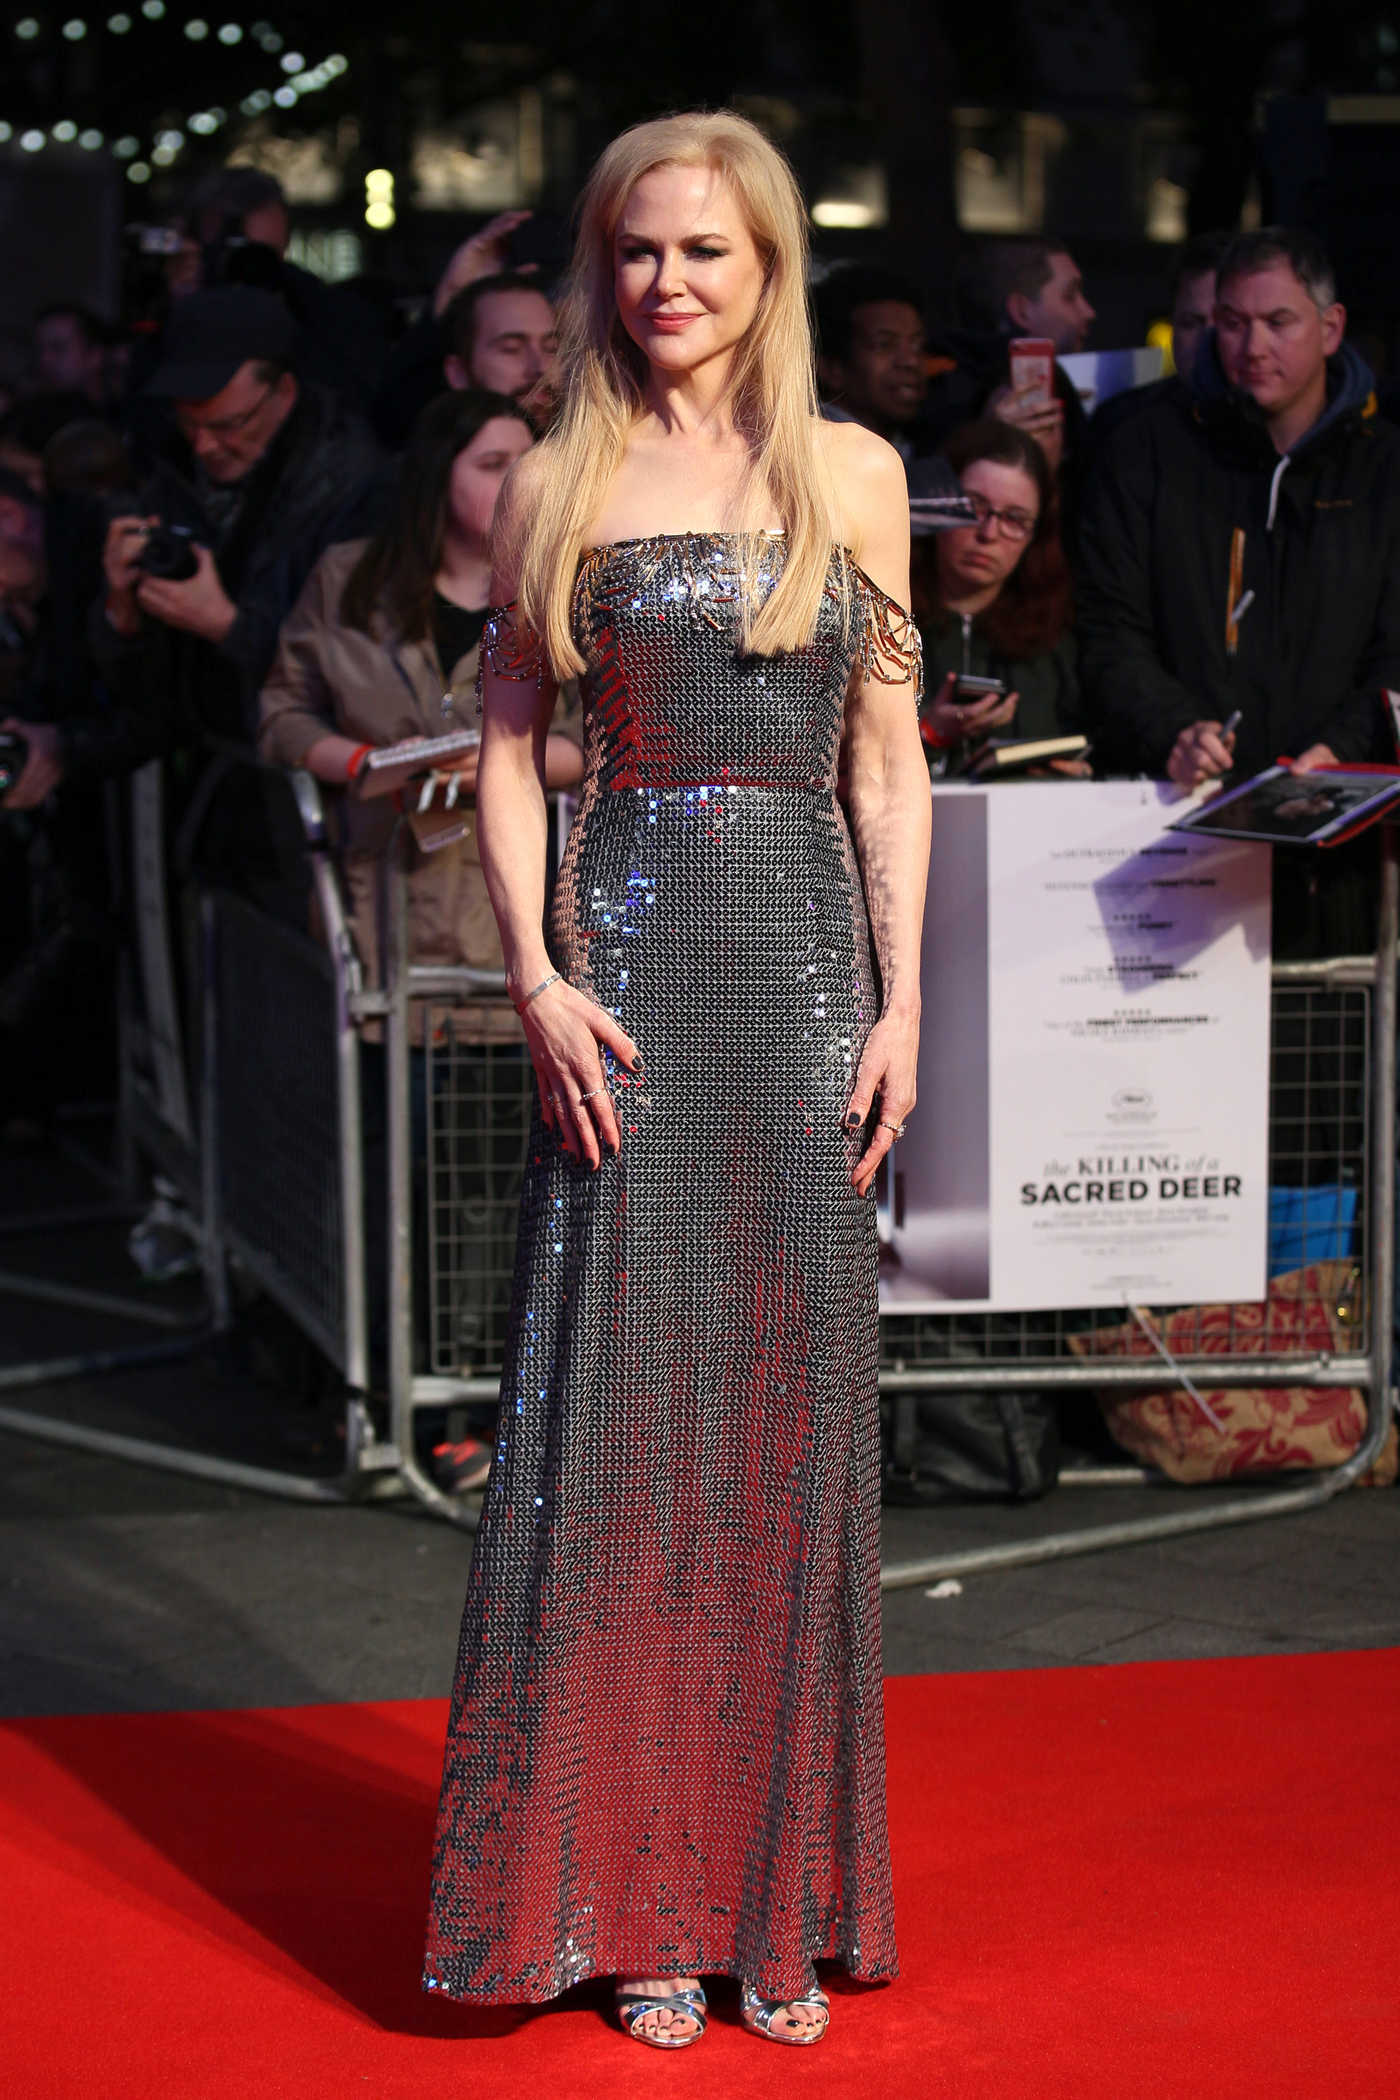 Nicole Kidman at the Killing of a Sacred Deer UK Premiere During  the 61st BFI London Film Festival 10/12/2017